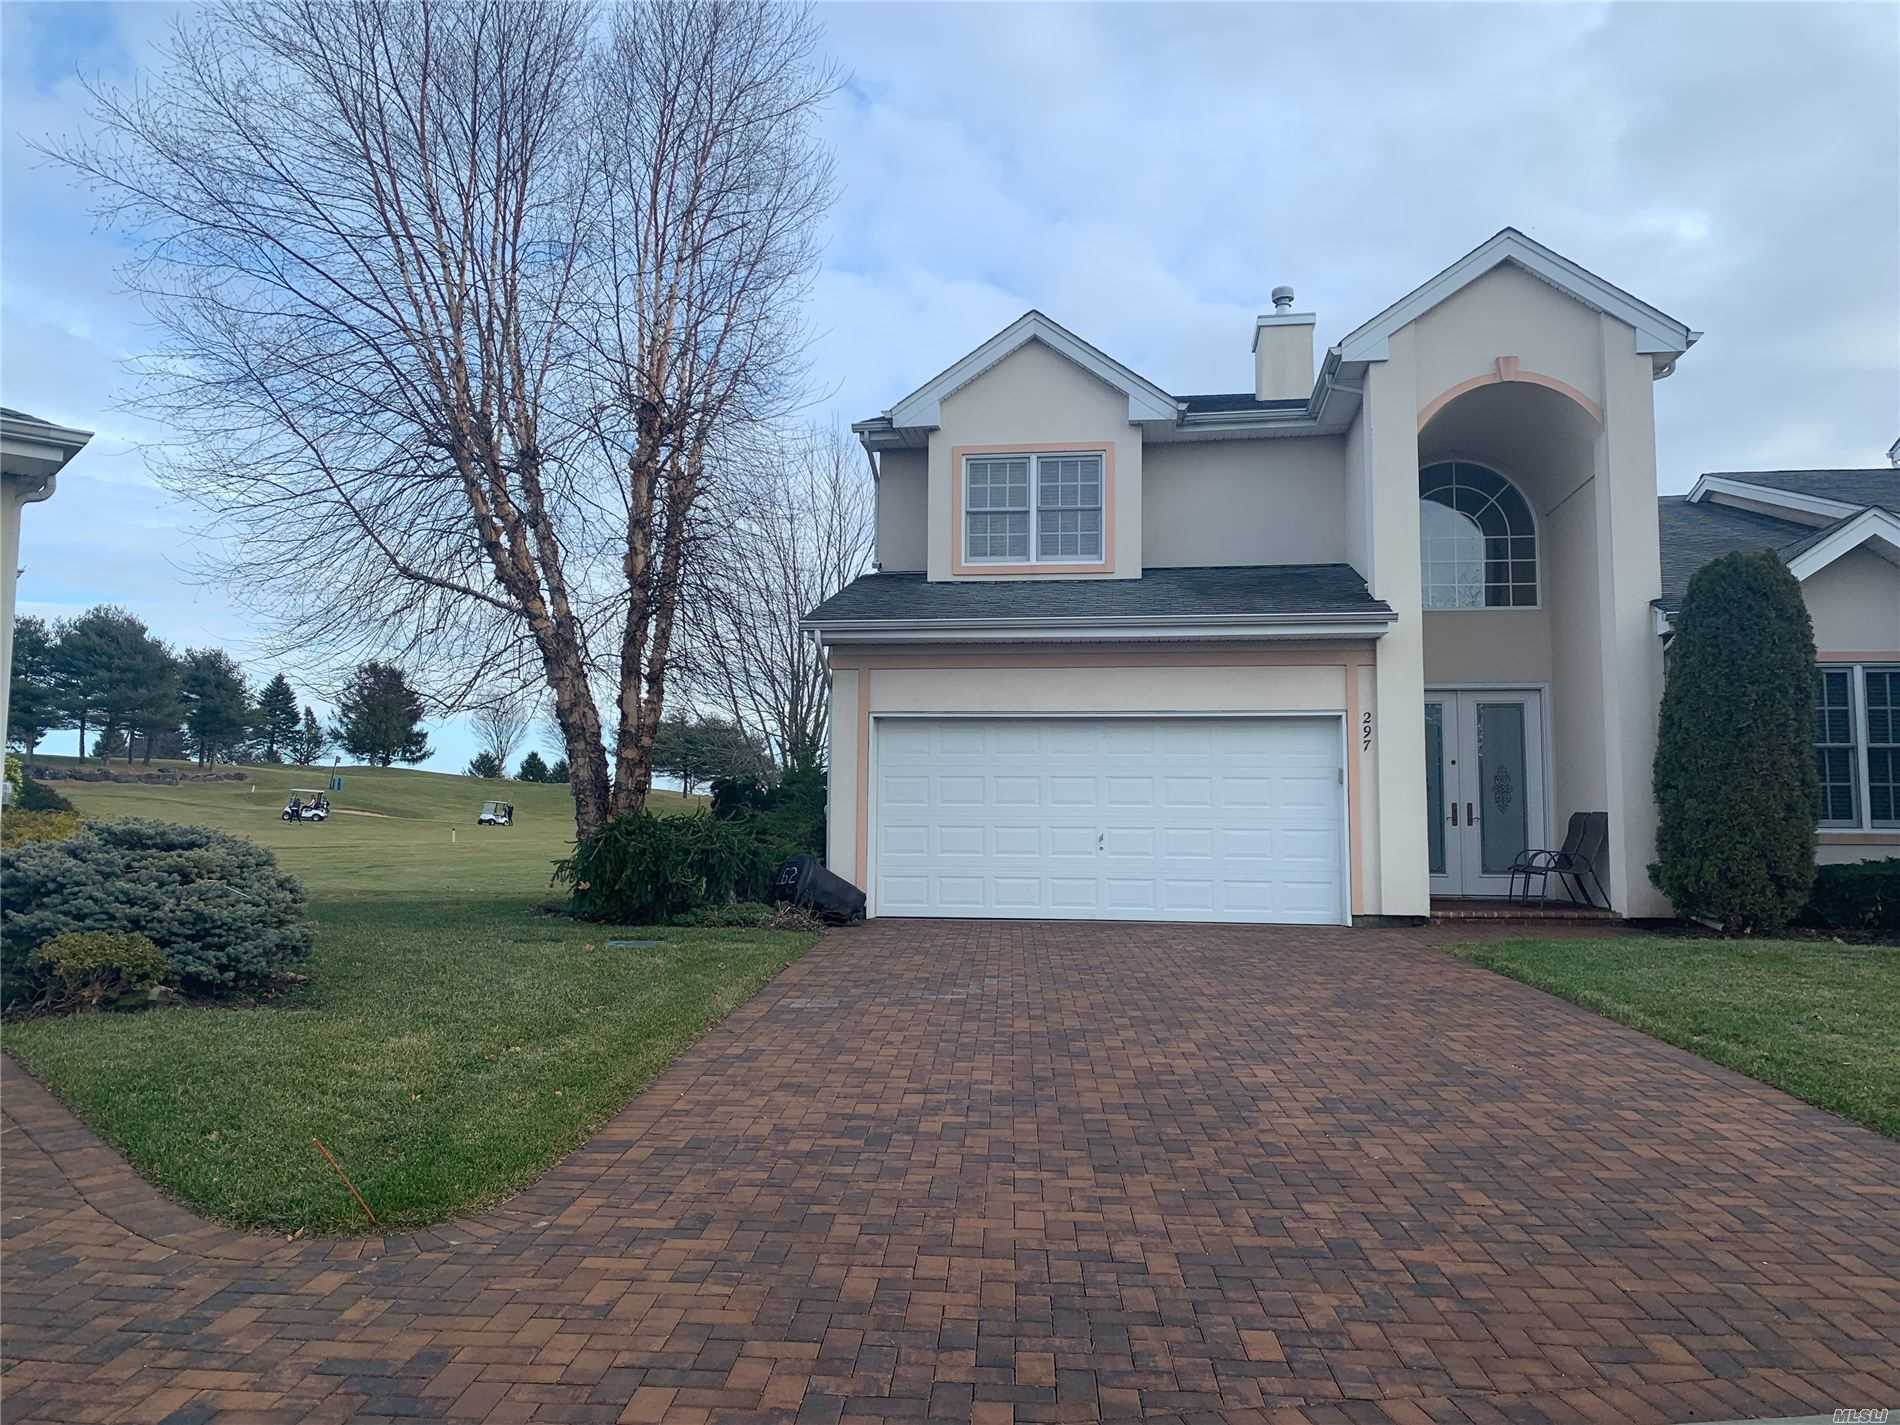 Property for sale at 297 Madeira Boulevard, Melville NY 11747, Melville,  New York 11747